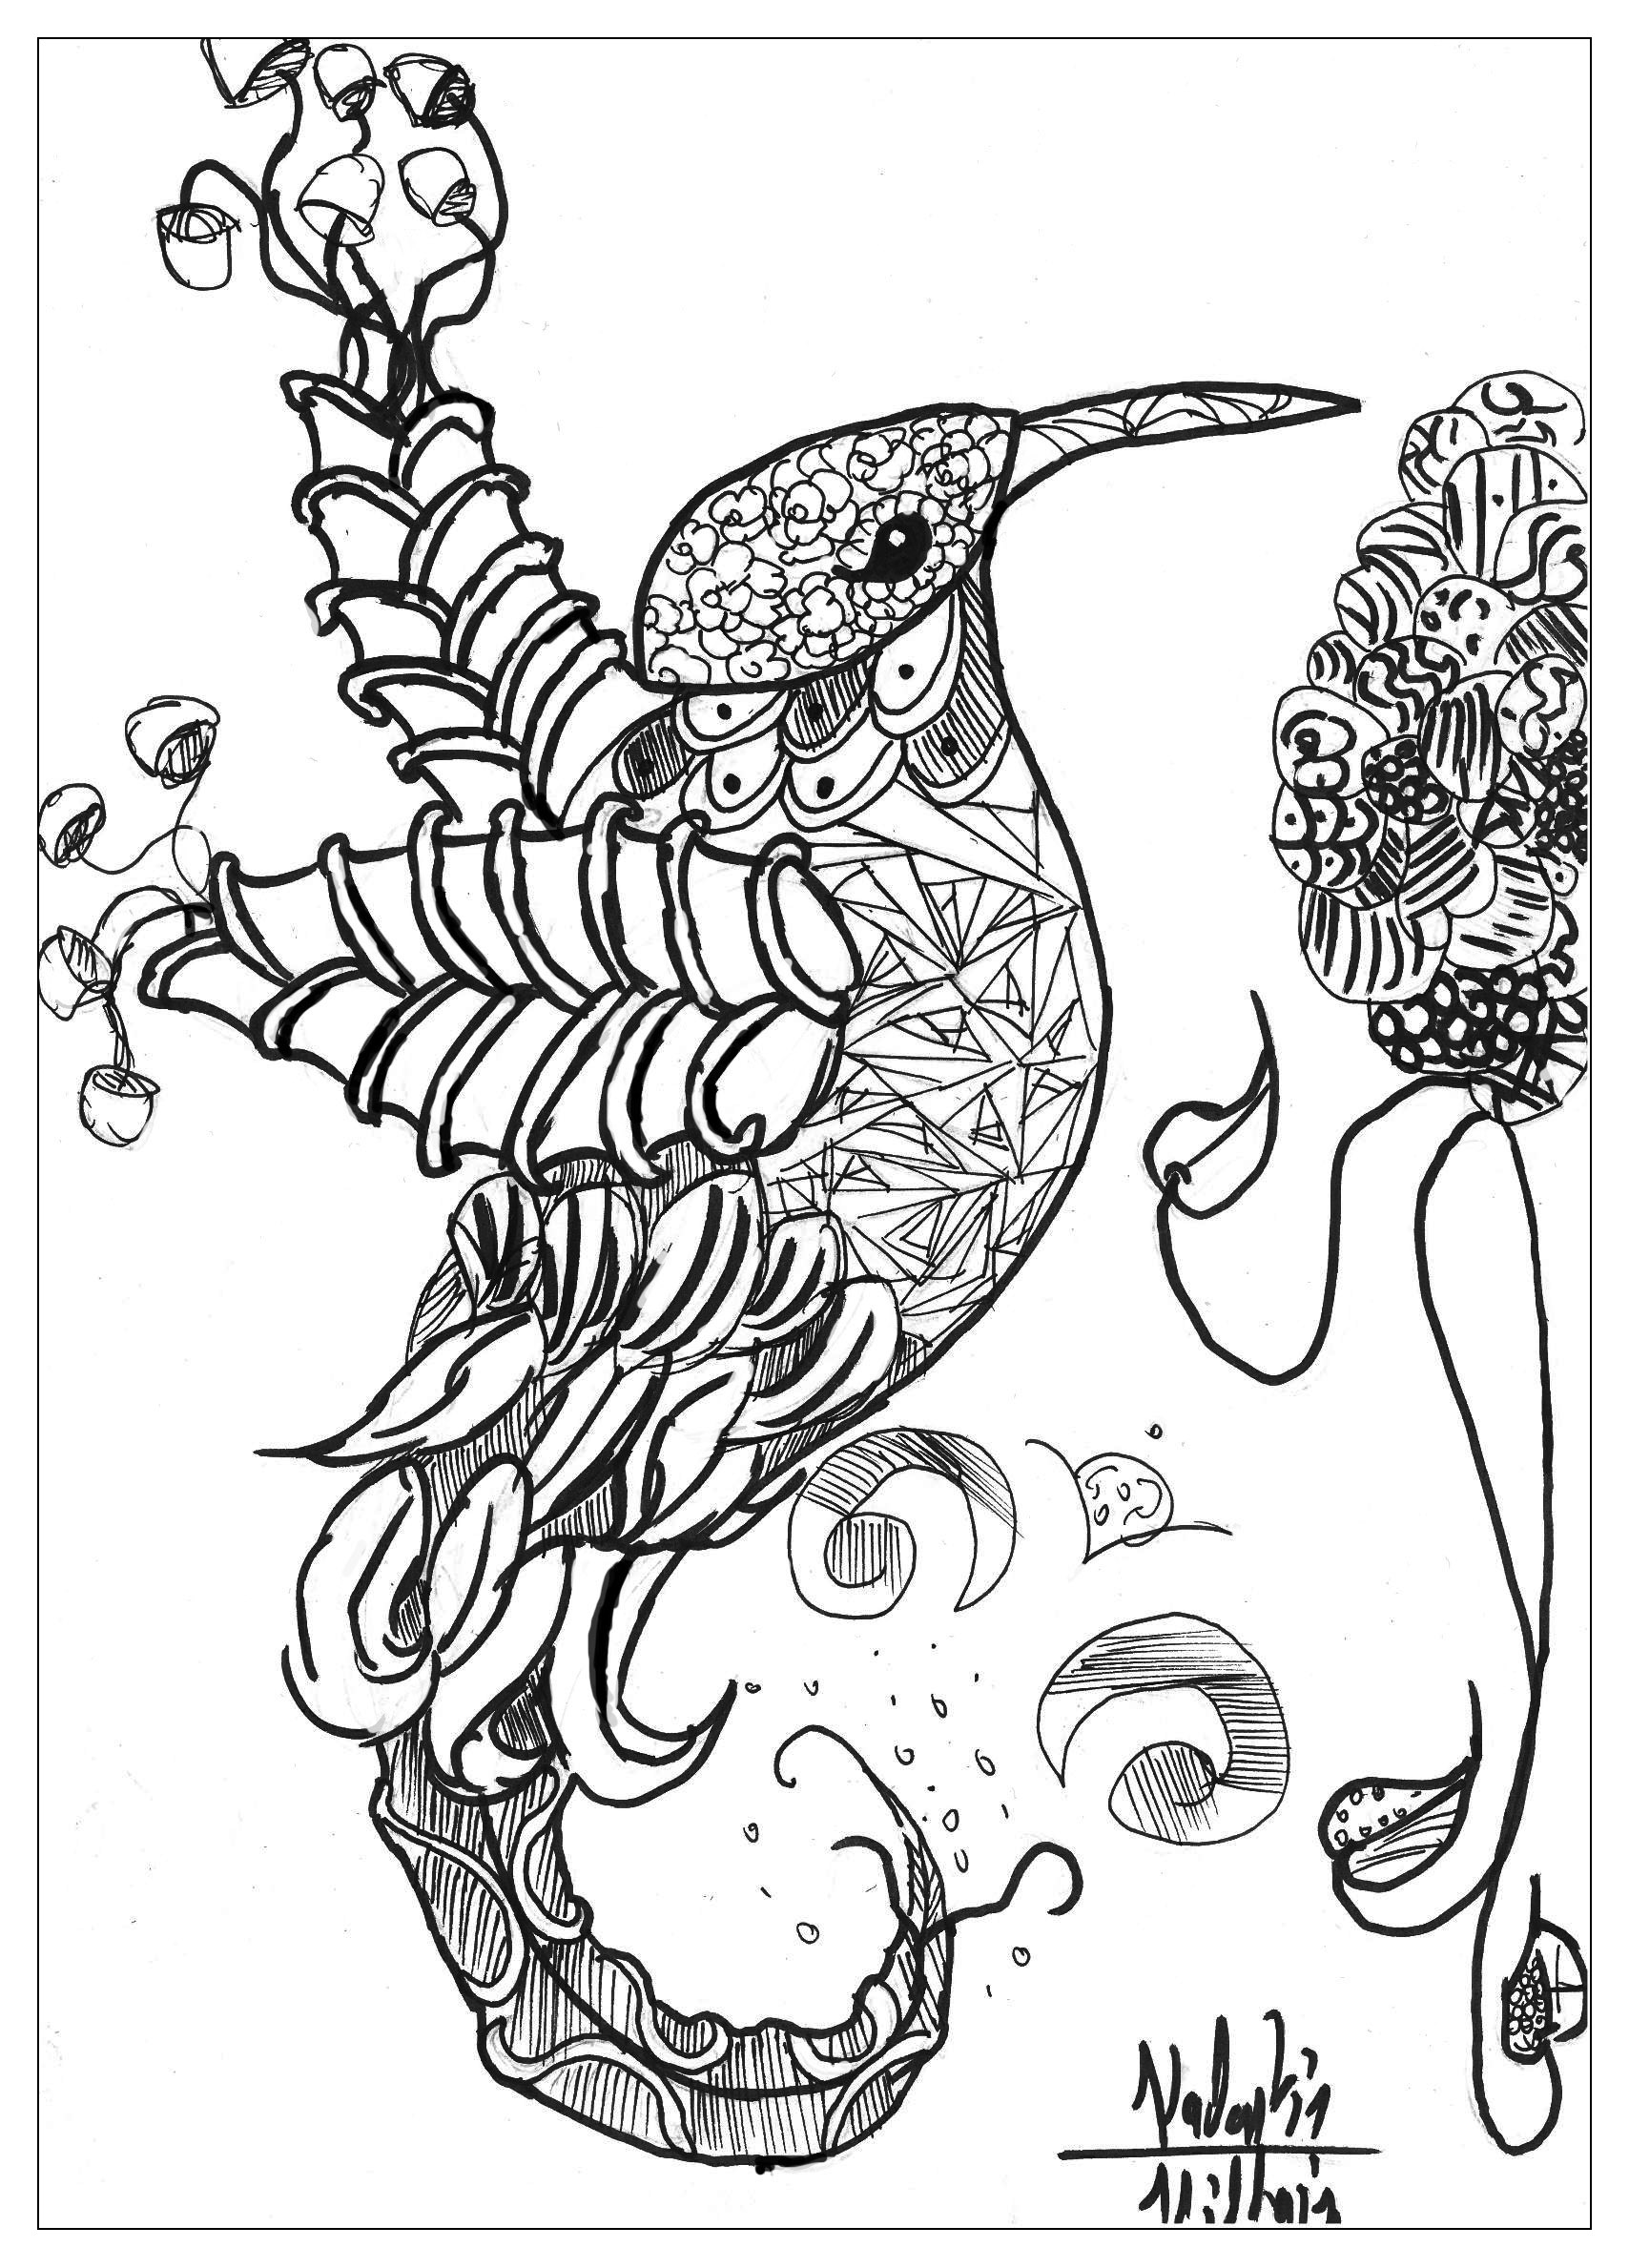 coloring page with animals gallery